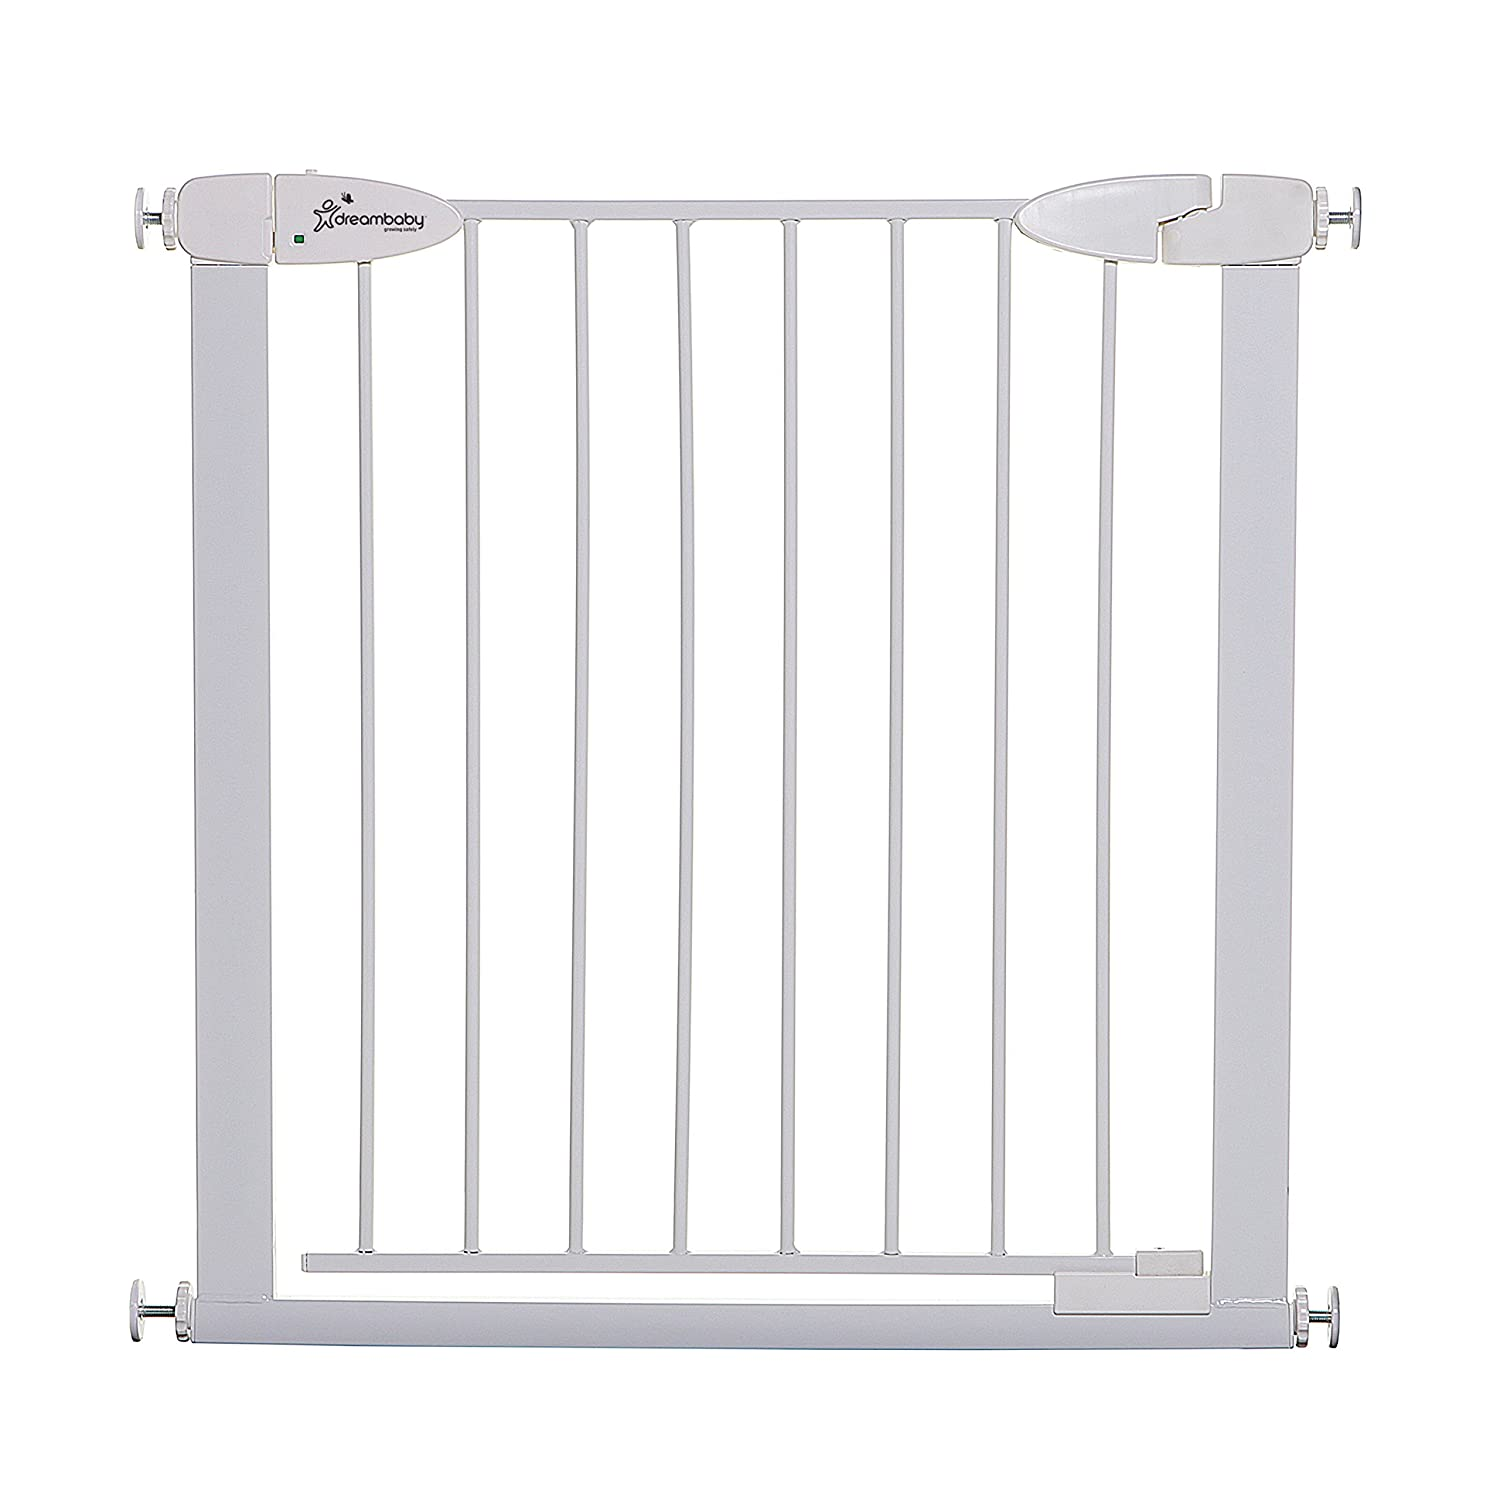 Dreambaby Boston Magnetic Auto Close Security Gate w/Stay Open Feature (29.5-32.5 inches, White)